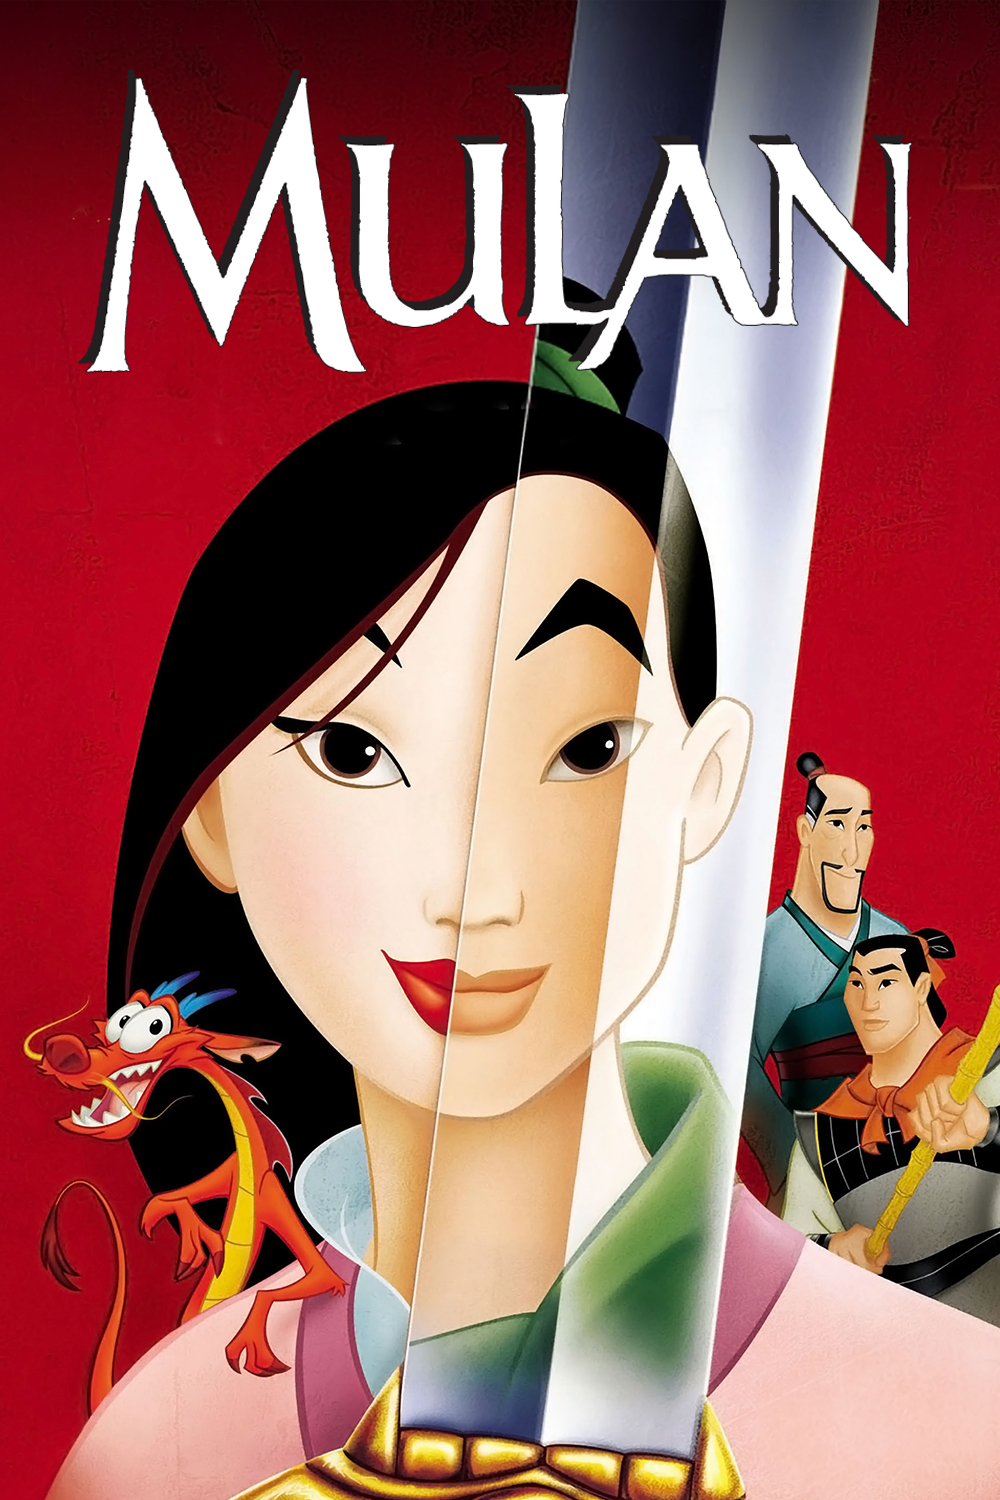 Which 'Mulan' character is your favourite?